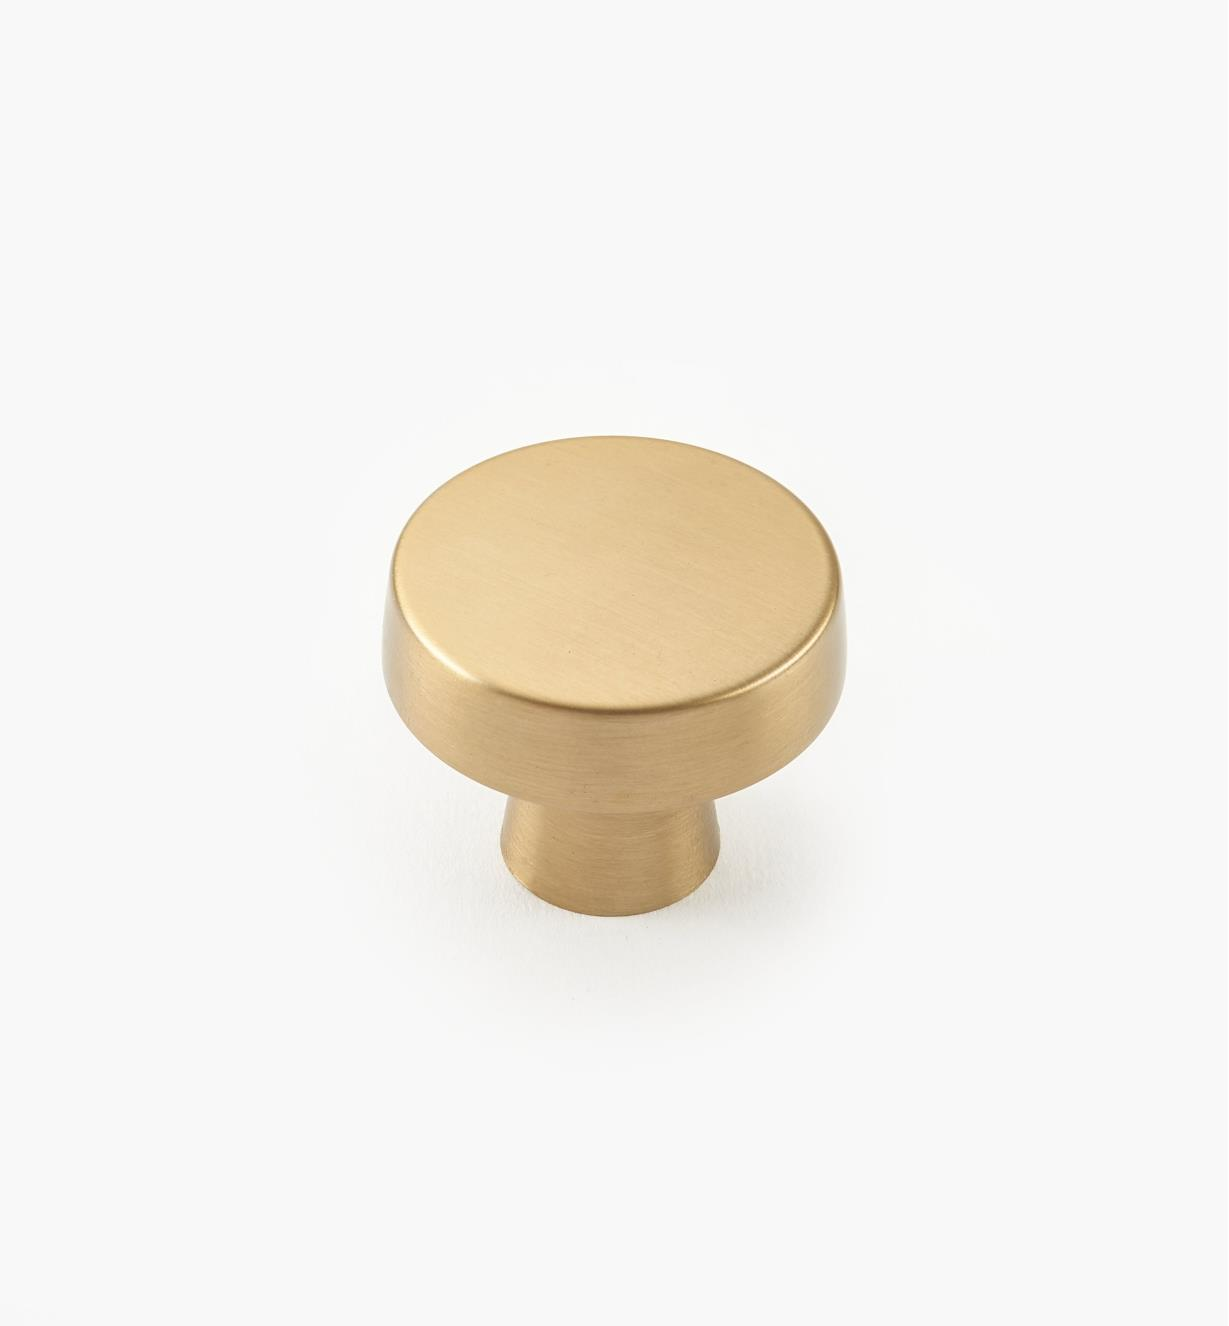 "02A1782 - Blackrock Golden Champagne 1 5/8"" x 1 3/8"" Round Knob, each"